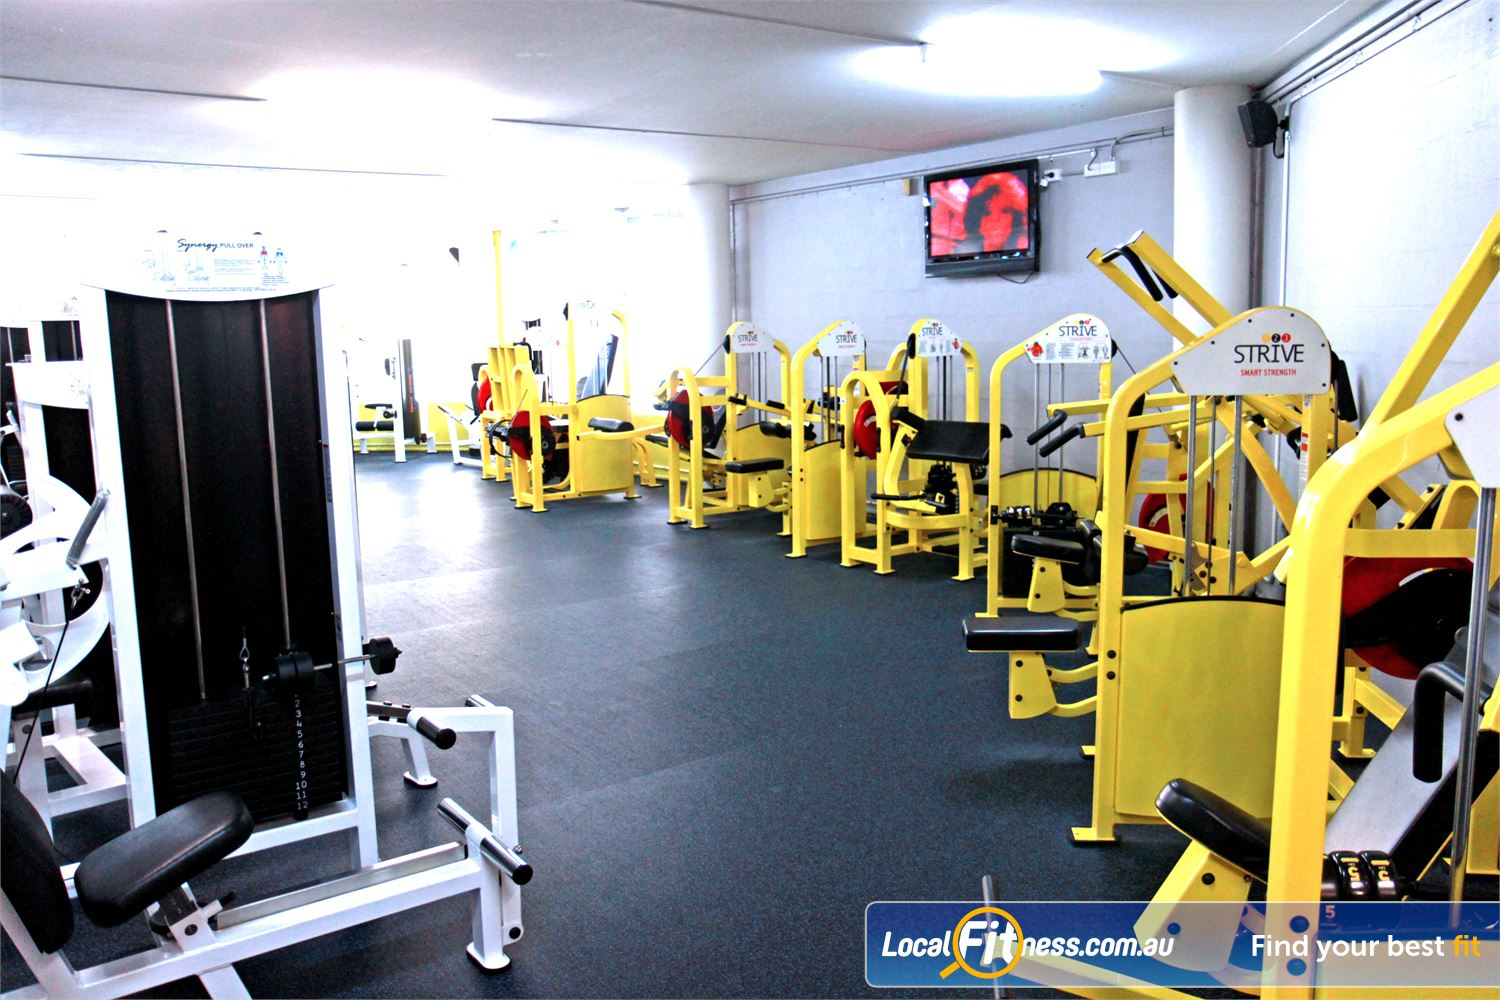 Goodlife Health Clubs Near Cleveland The Alexandra Hills gym includes an extensive selection of equipment from Calgym and Strive.